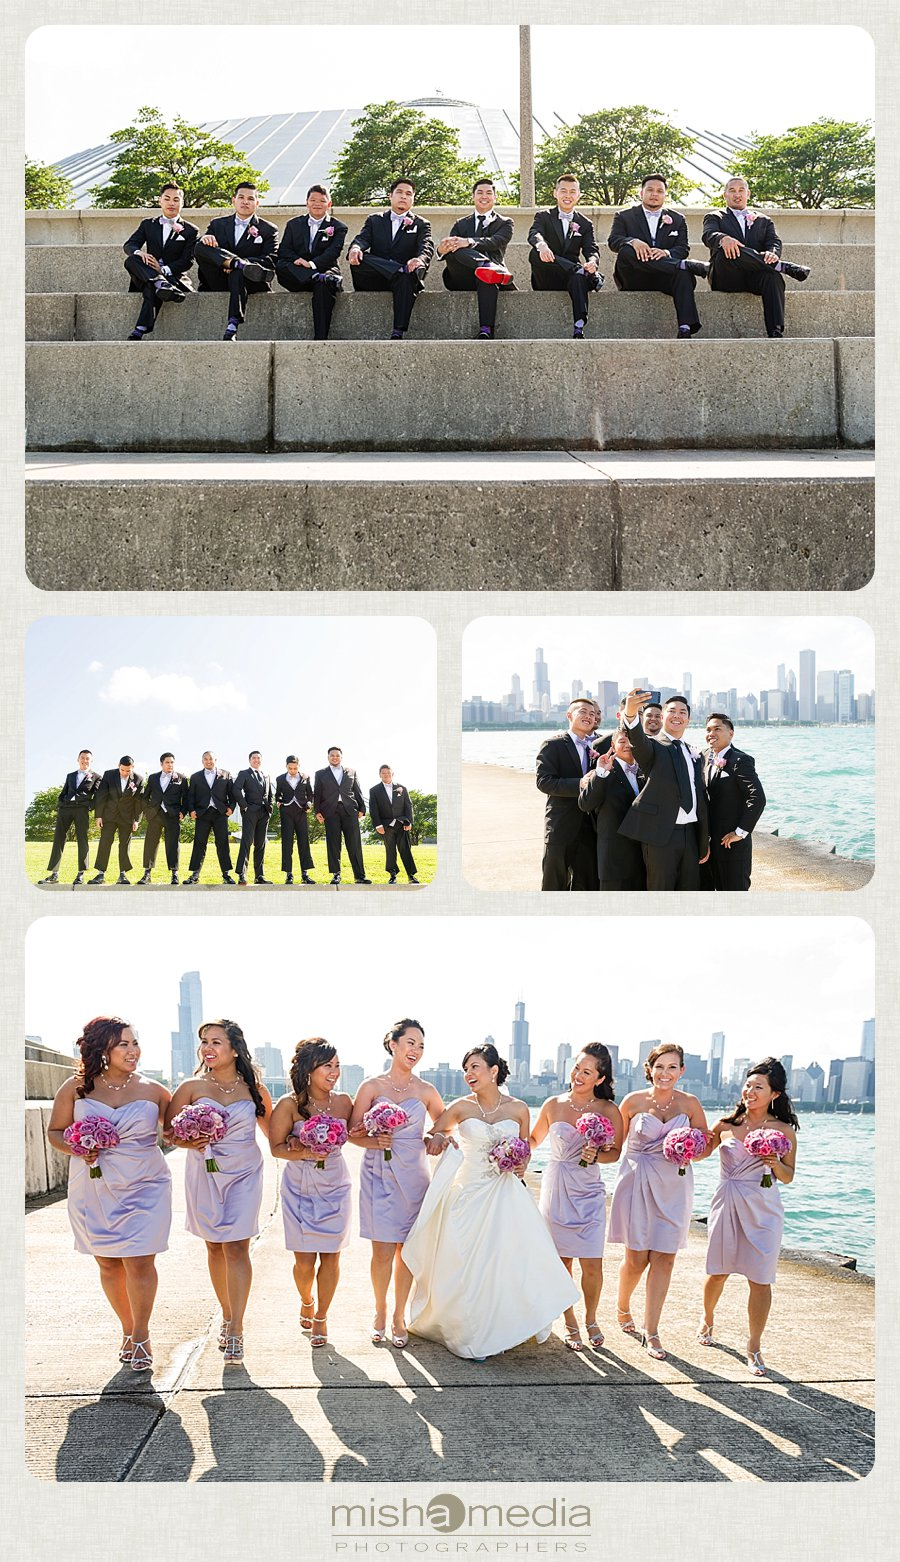 Weddings at Chicago Hilton-CJ_0008